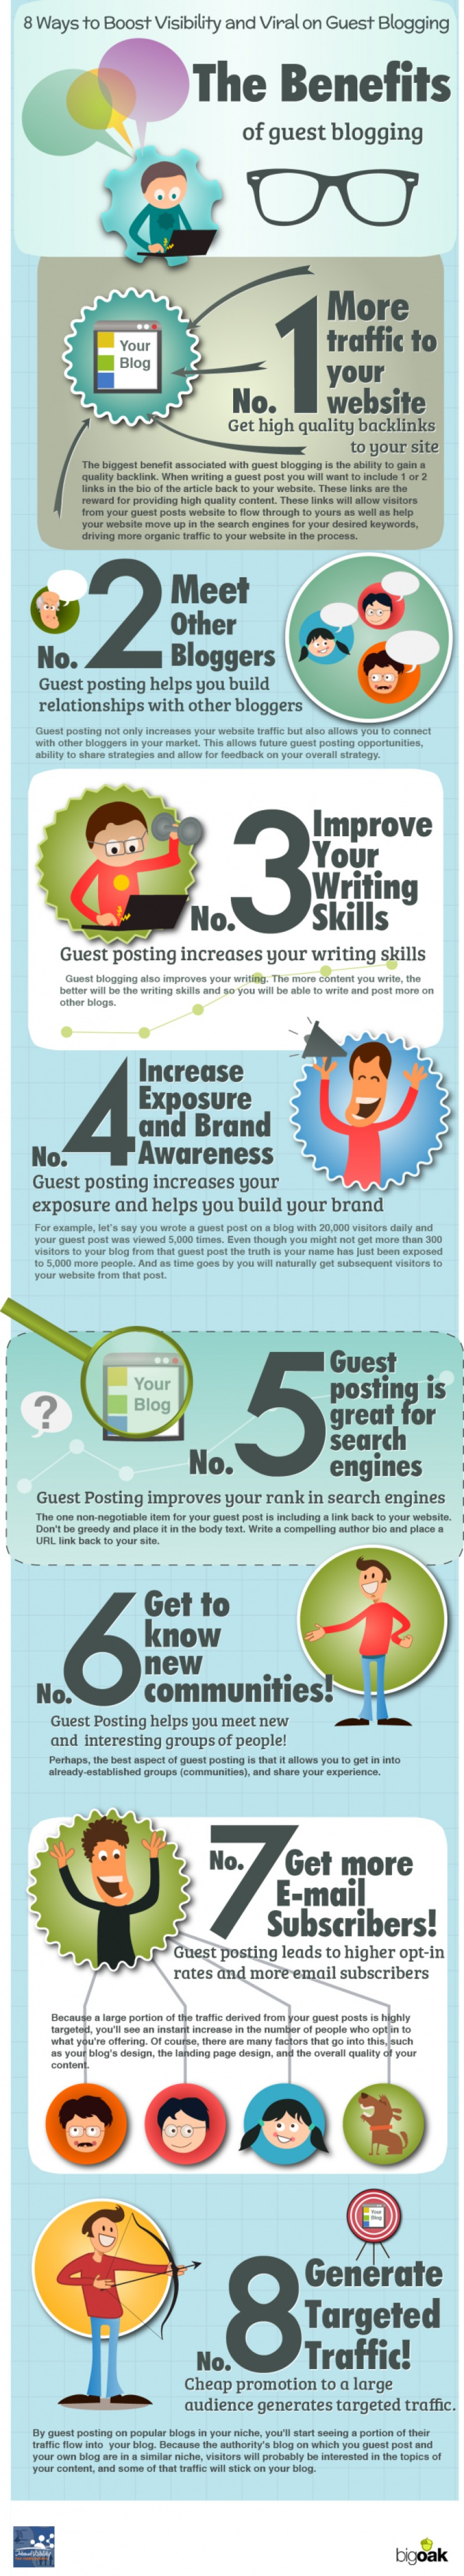 8 Advantages of Guest Blogging